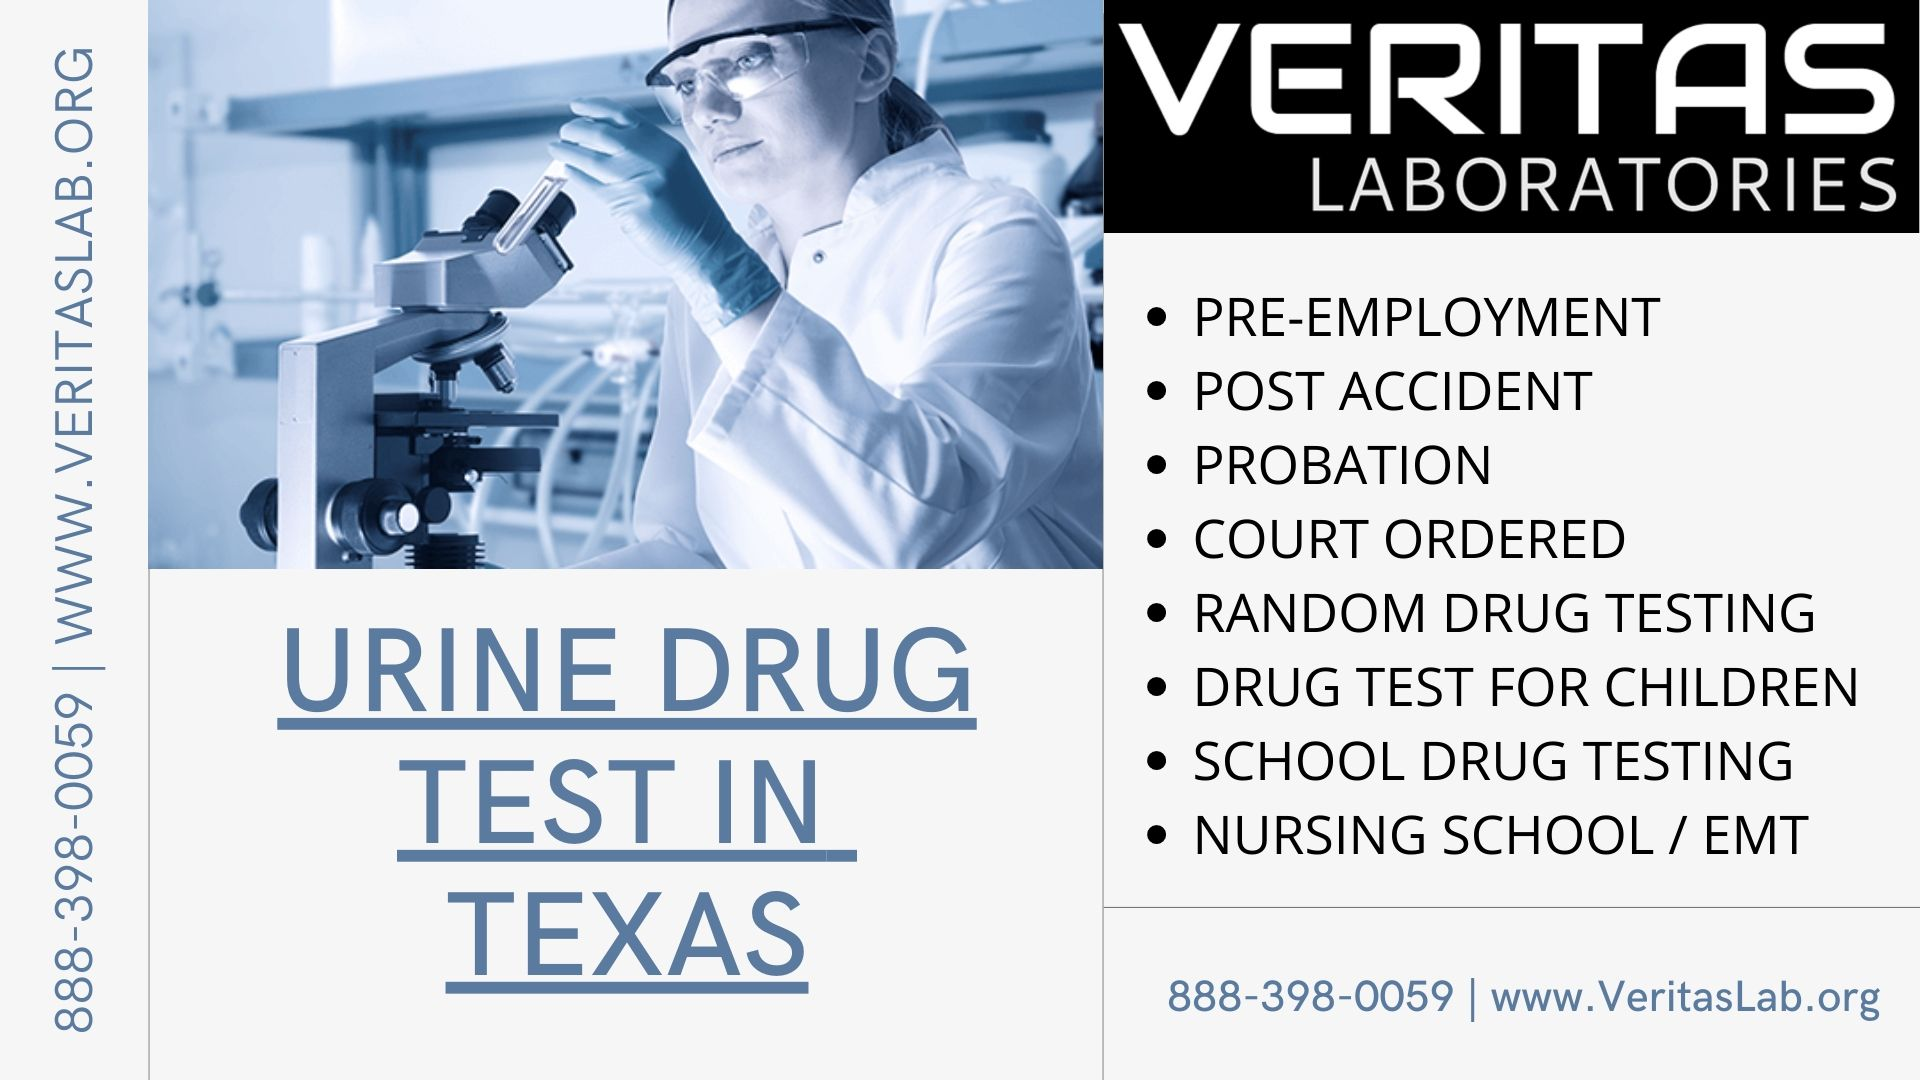 URINE DRUG TEST IN TEXAS ALCOHOL ETG PETH BLOOD TEST EXPLAINED FAQ VERITAS LAB TX